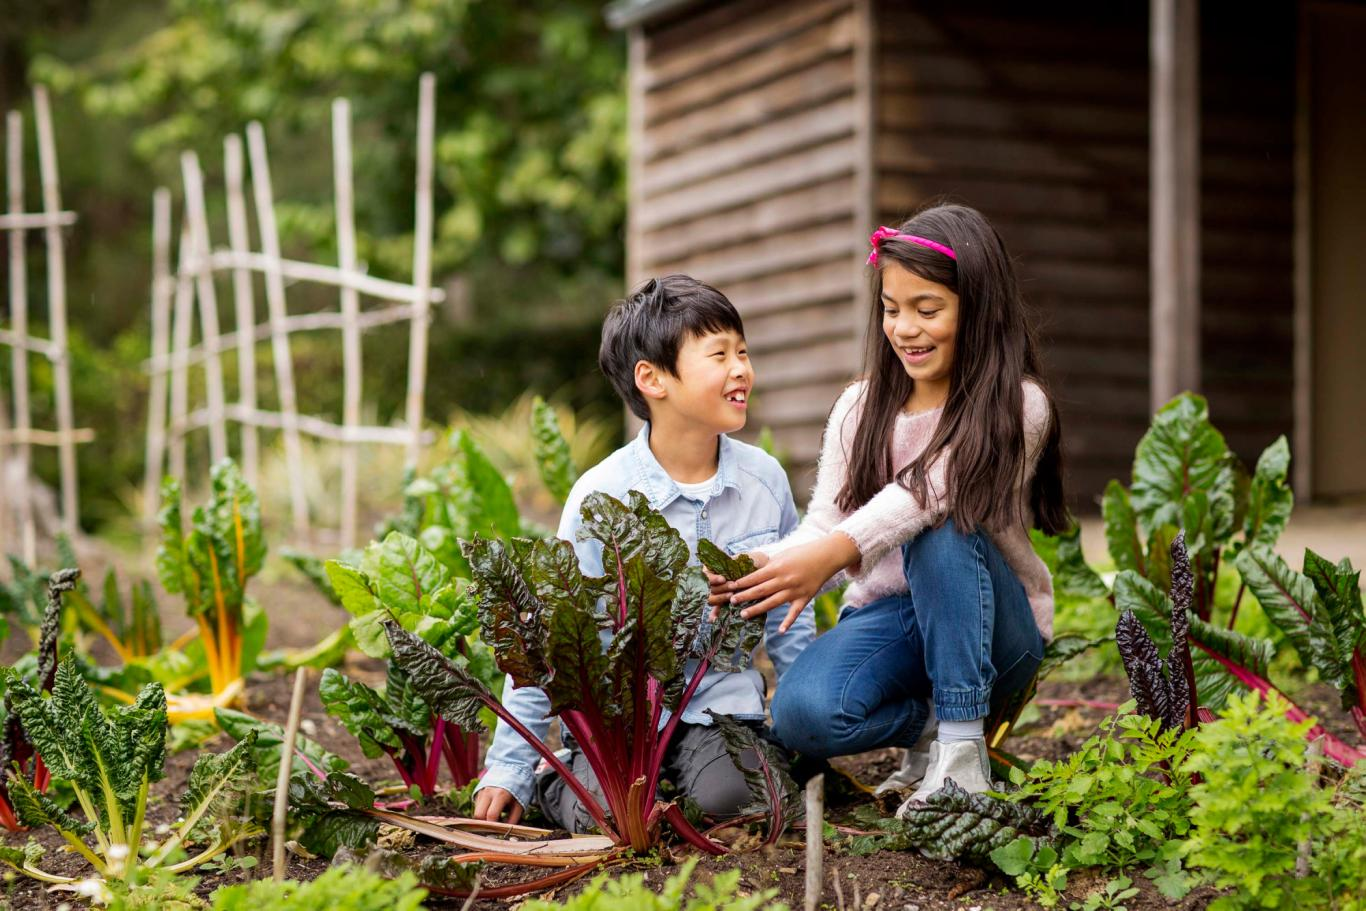 Two children in kitchen garden setting with shed behind.